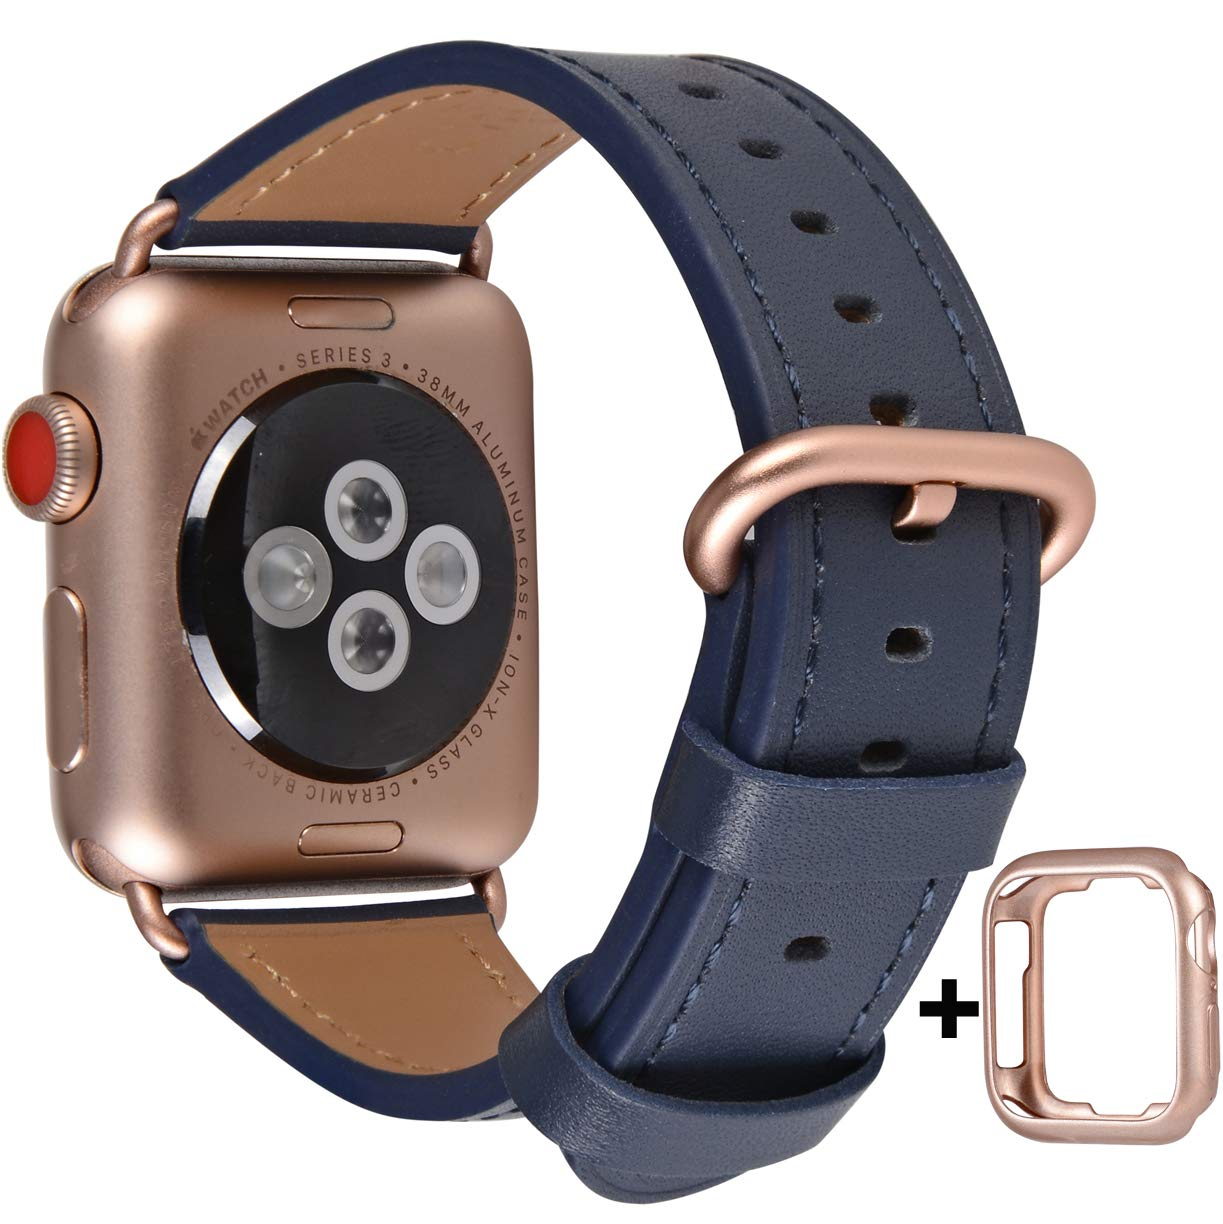 Band For Apple Watch 38 40mm Leather Strap Iwatch 5 4 3 2 1 Navy Blue Rose Gold Ebay